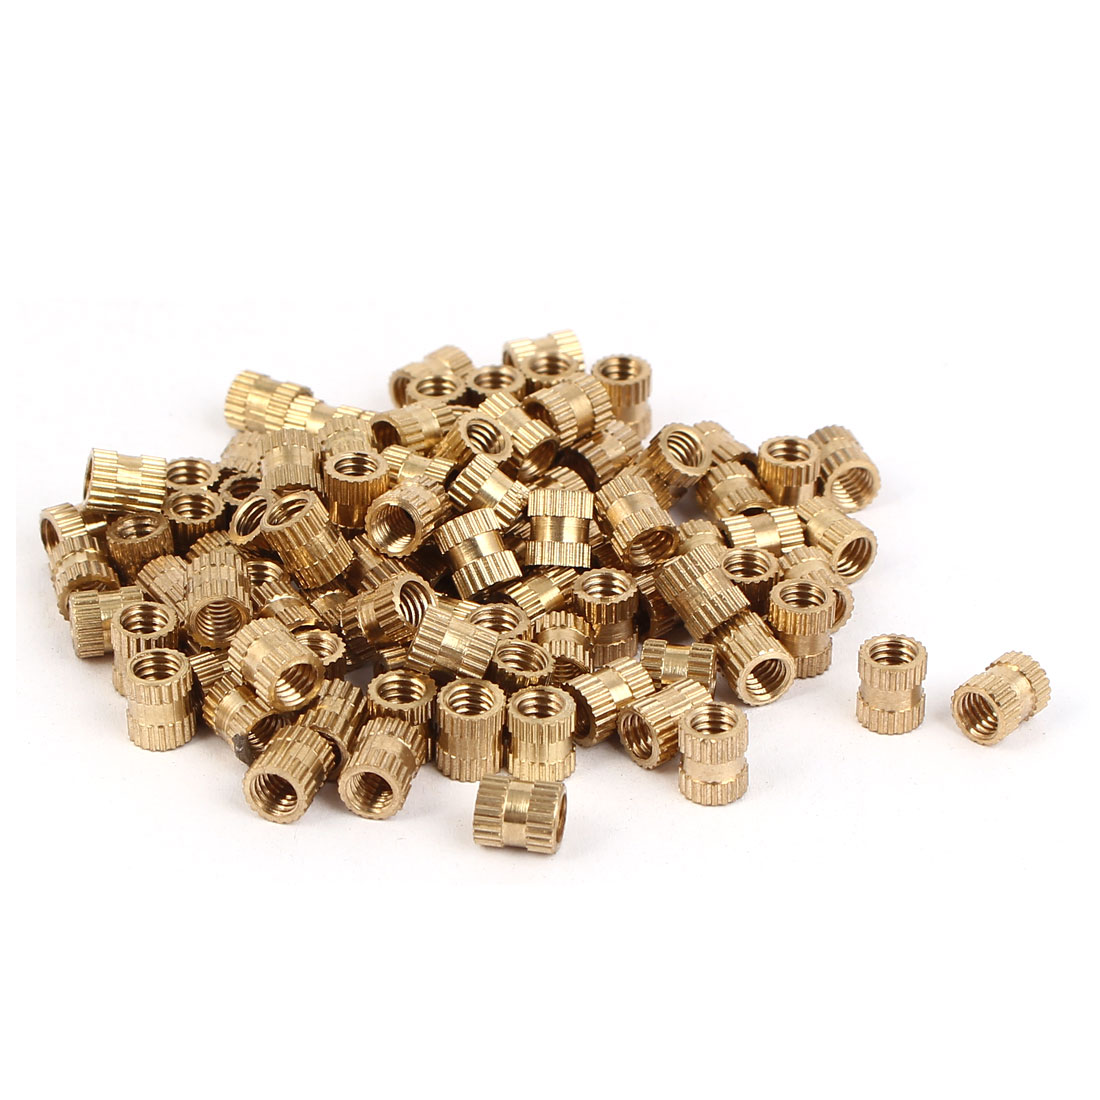 M4 x 6mm 0.7mm Pitch Brass Cylinder Knurled Threaded Insert Embedded Nuts 100PCS